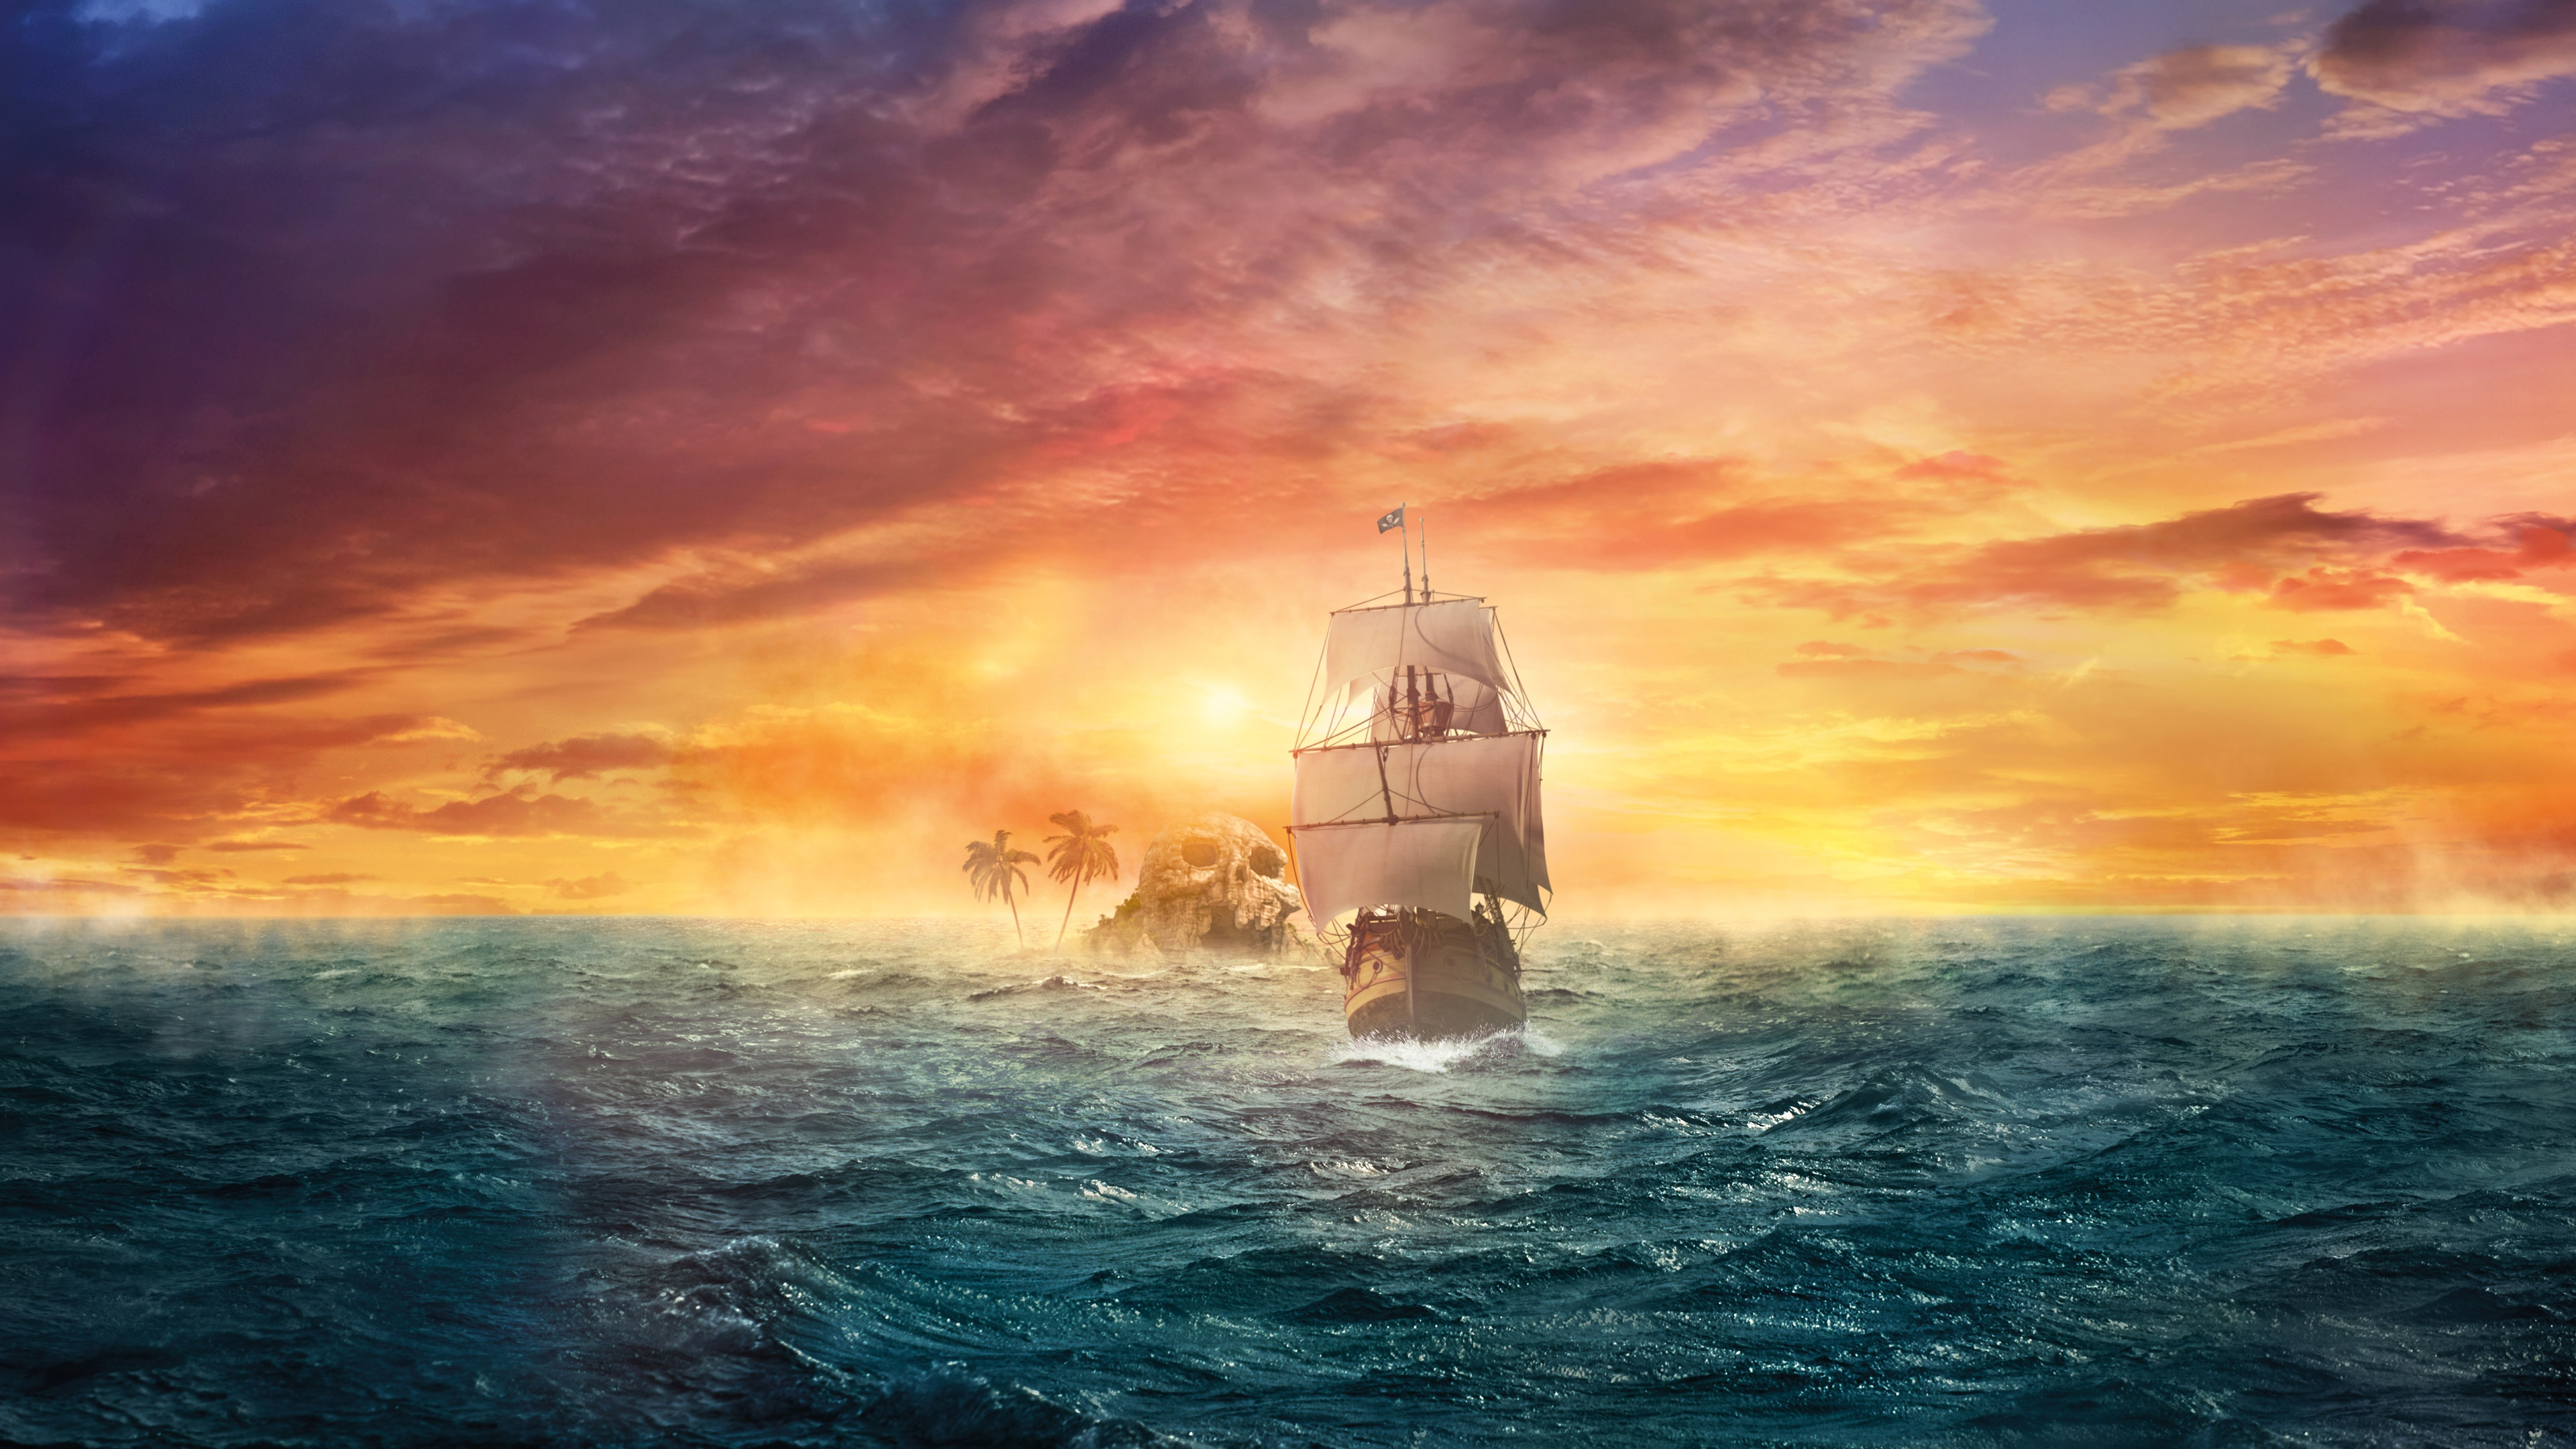 Fantasy - Ship  Pirate Ship Sea Sunset Island Skull Pirate Wallpaper